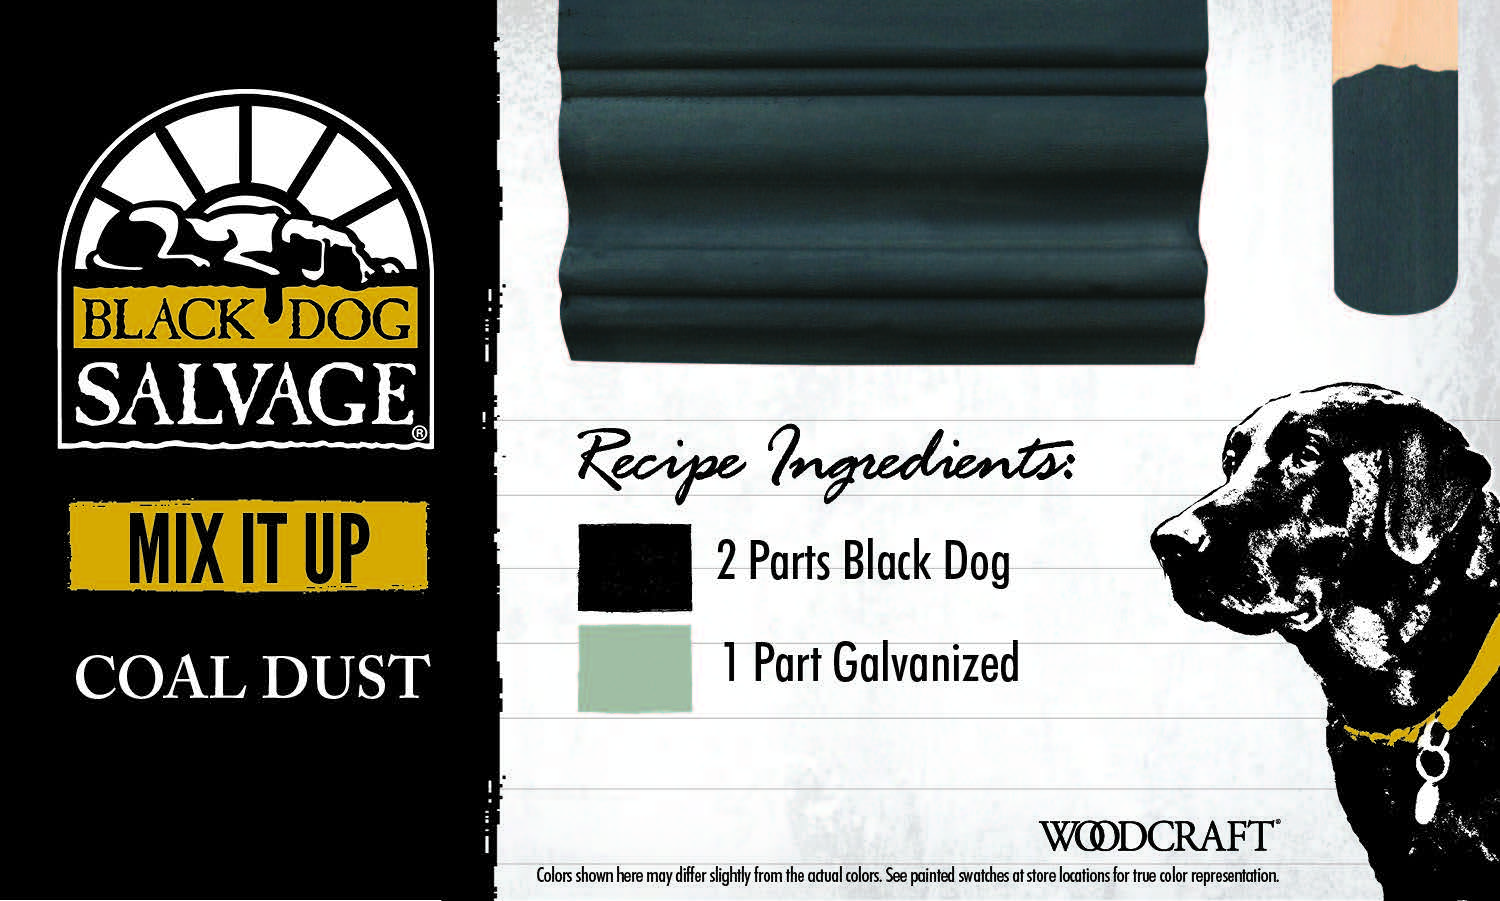 """Coal Dust"" is made from 2 Parts ""Black Dog"" and 1 Part ""Galvanized"""